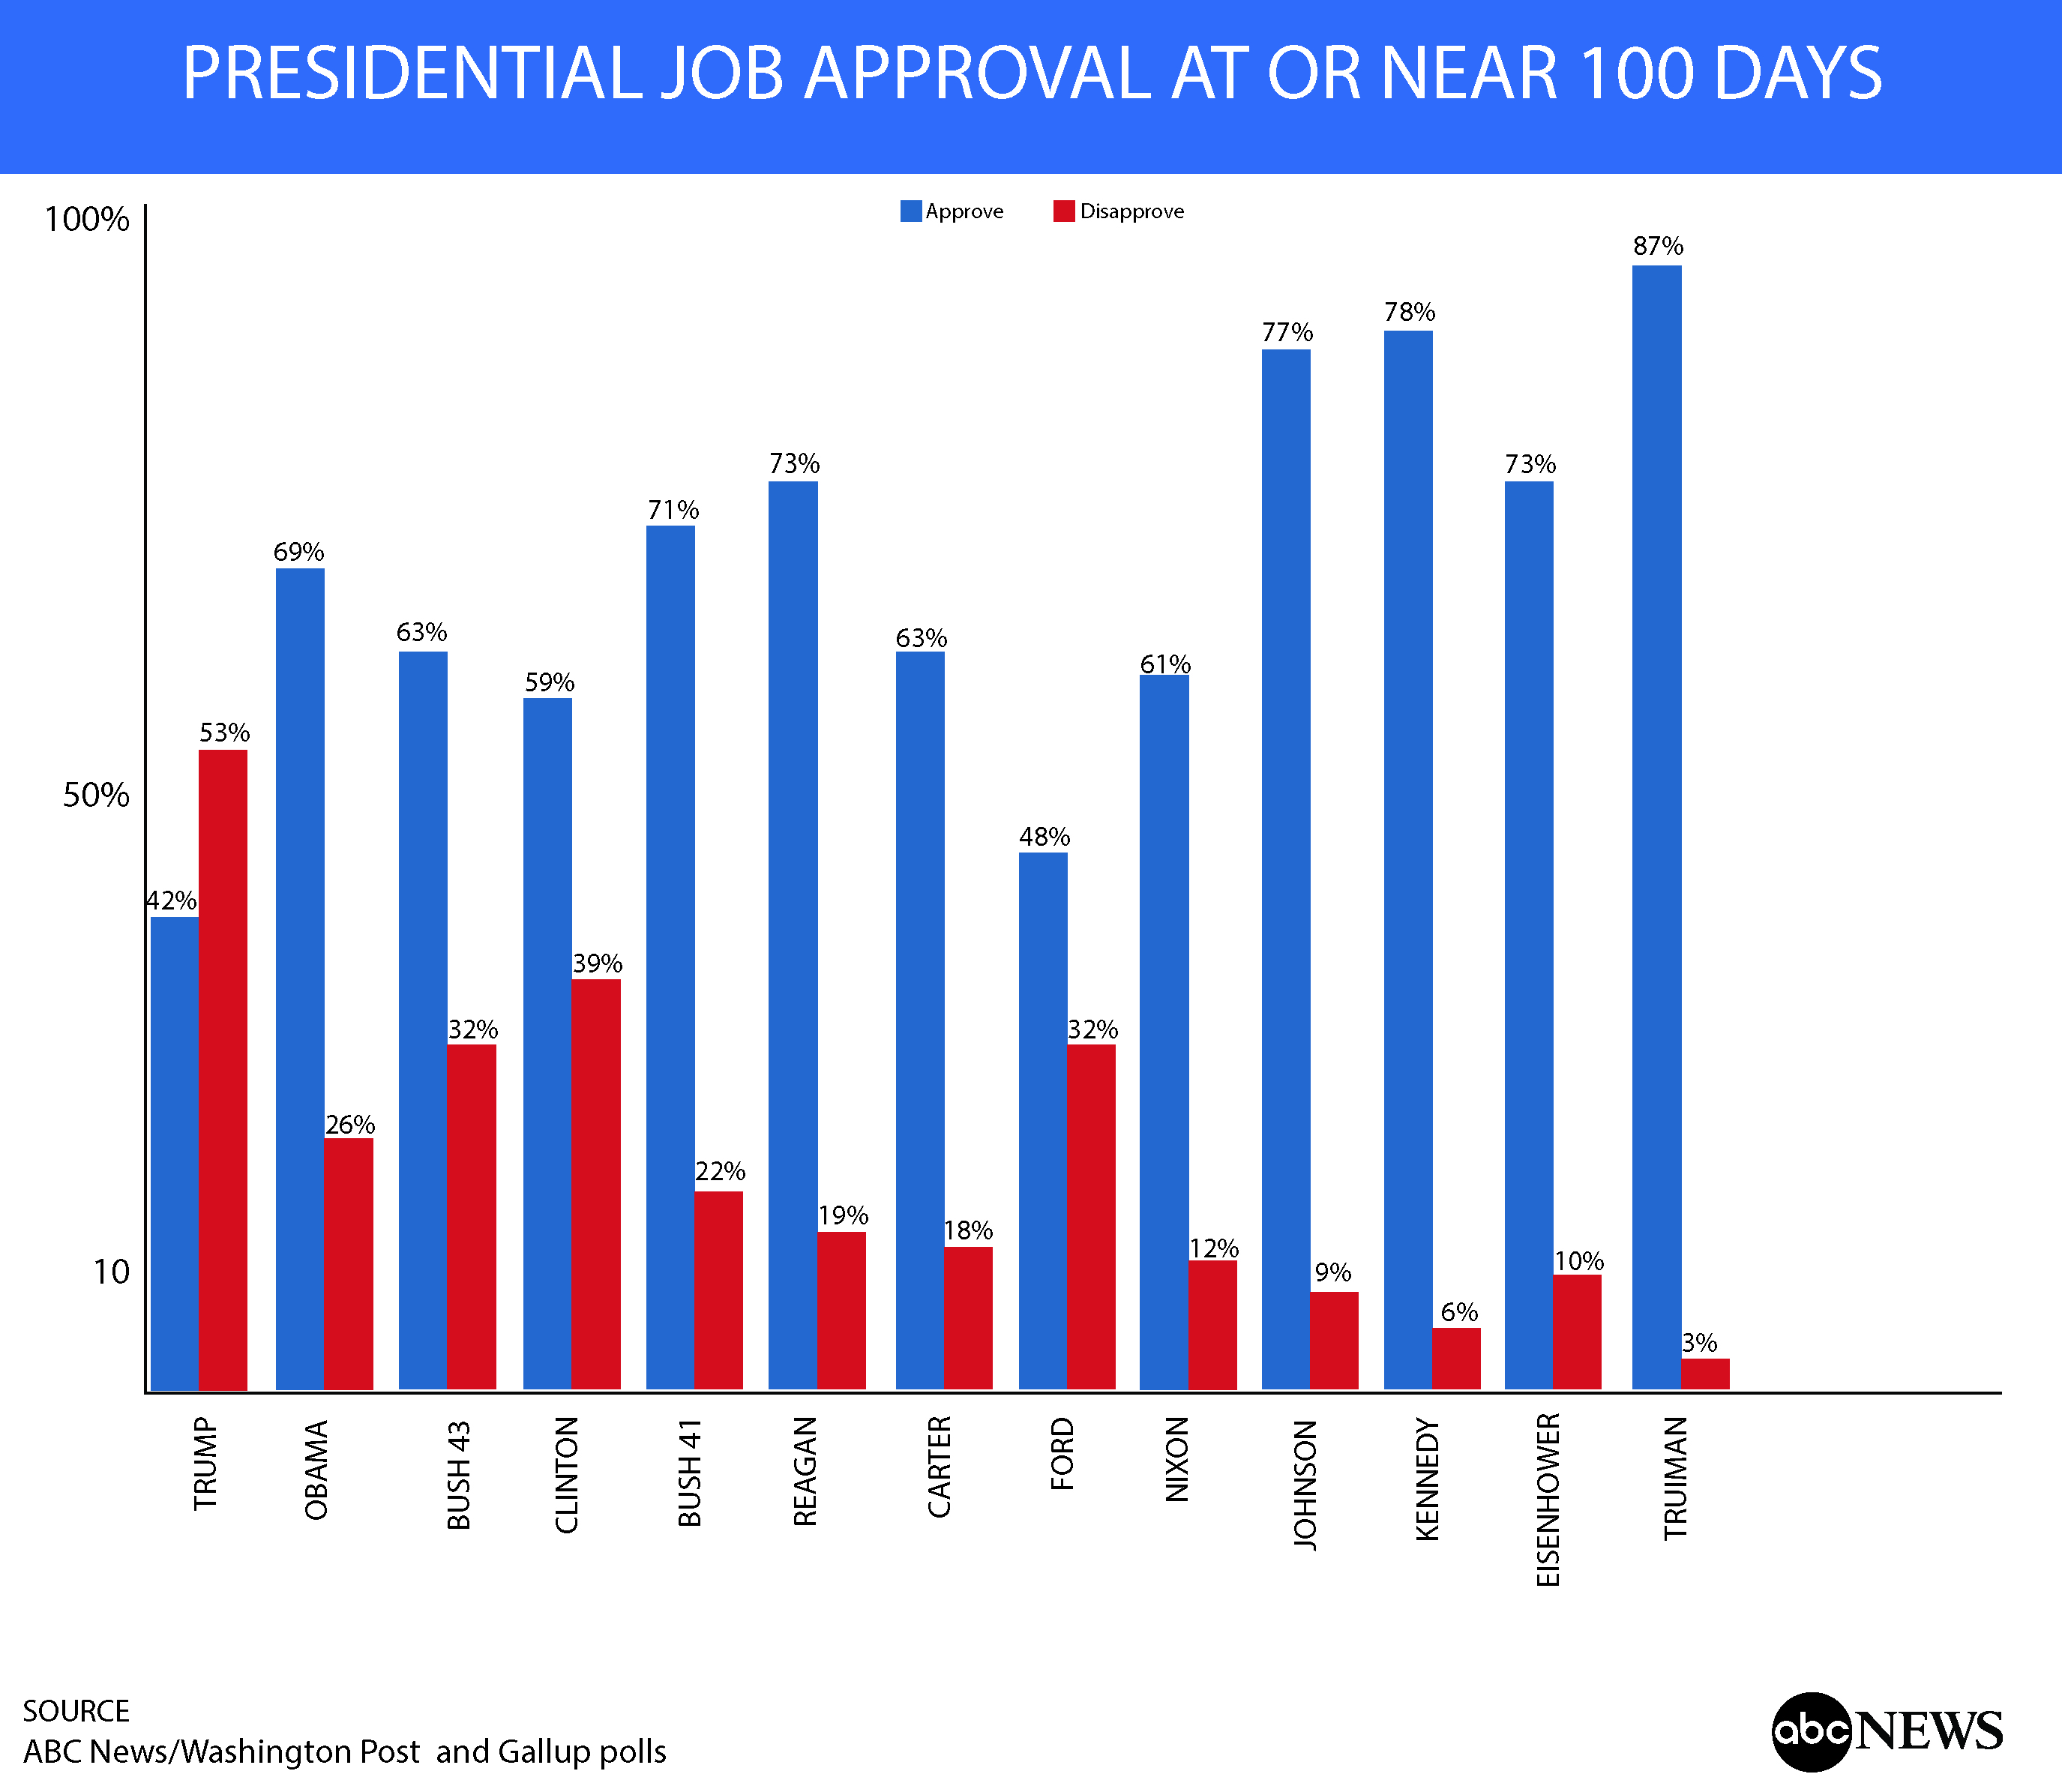 president trump at days no honeymoon but no regrets poll still the national survey finds some brighter spots for trump chiefly in pushing for jobs and in foreign policy as well as deep popularity problems for